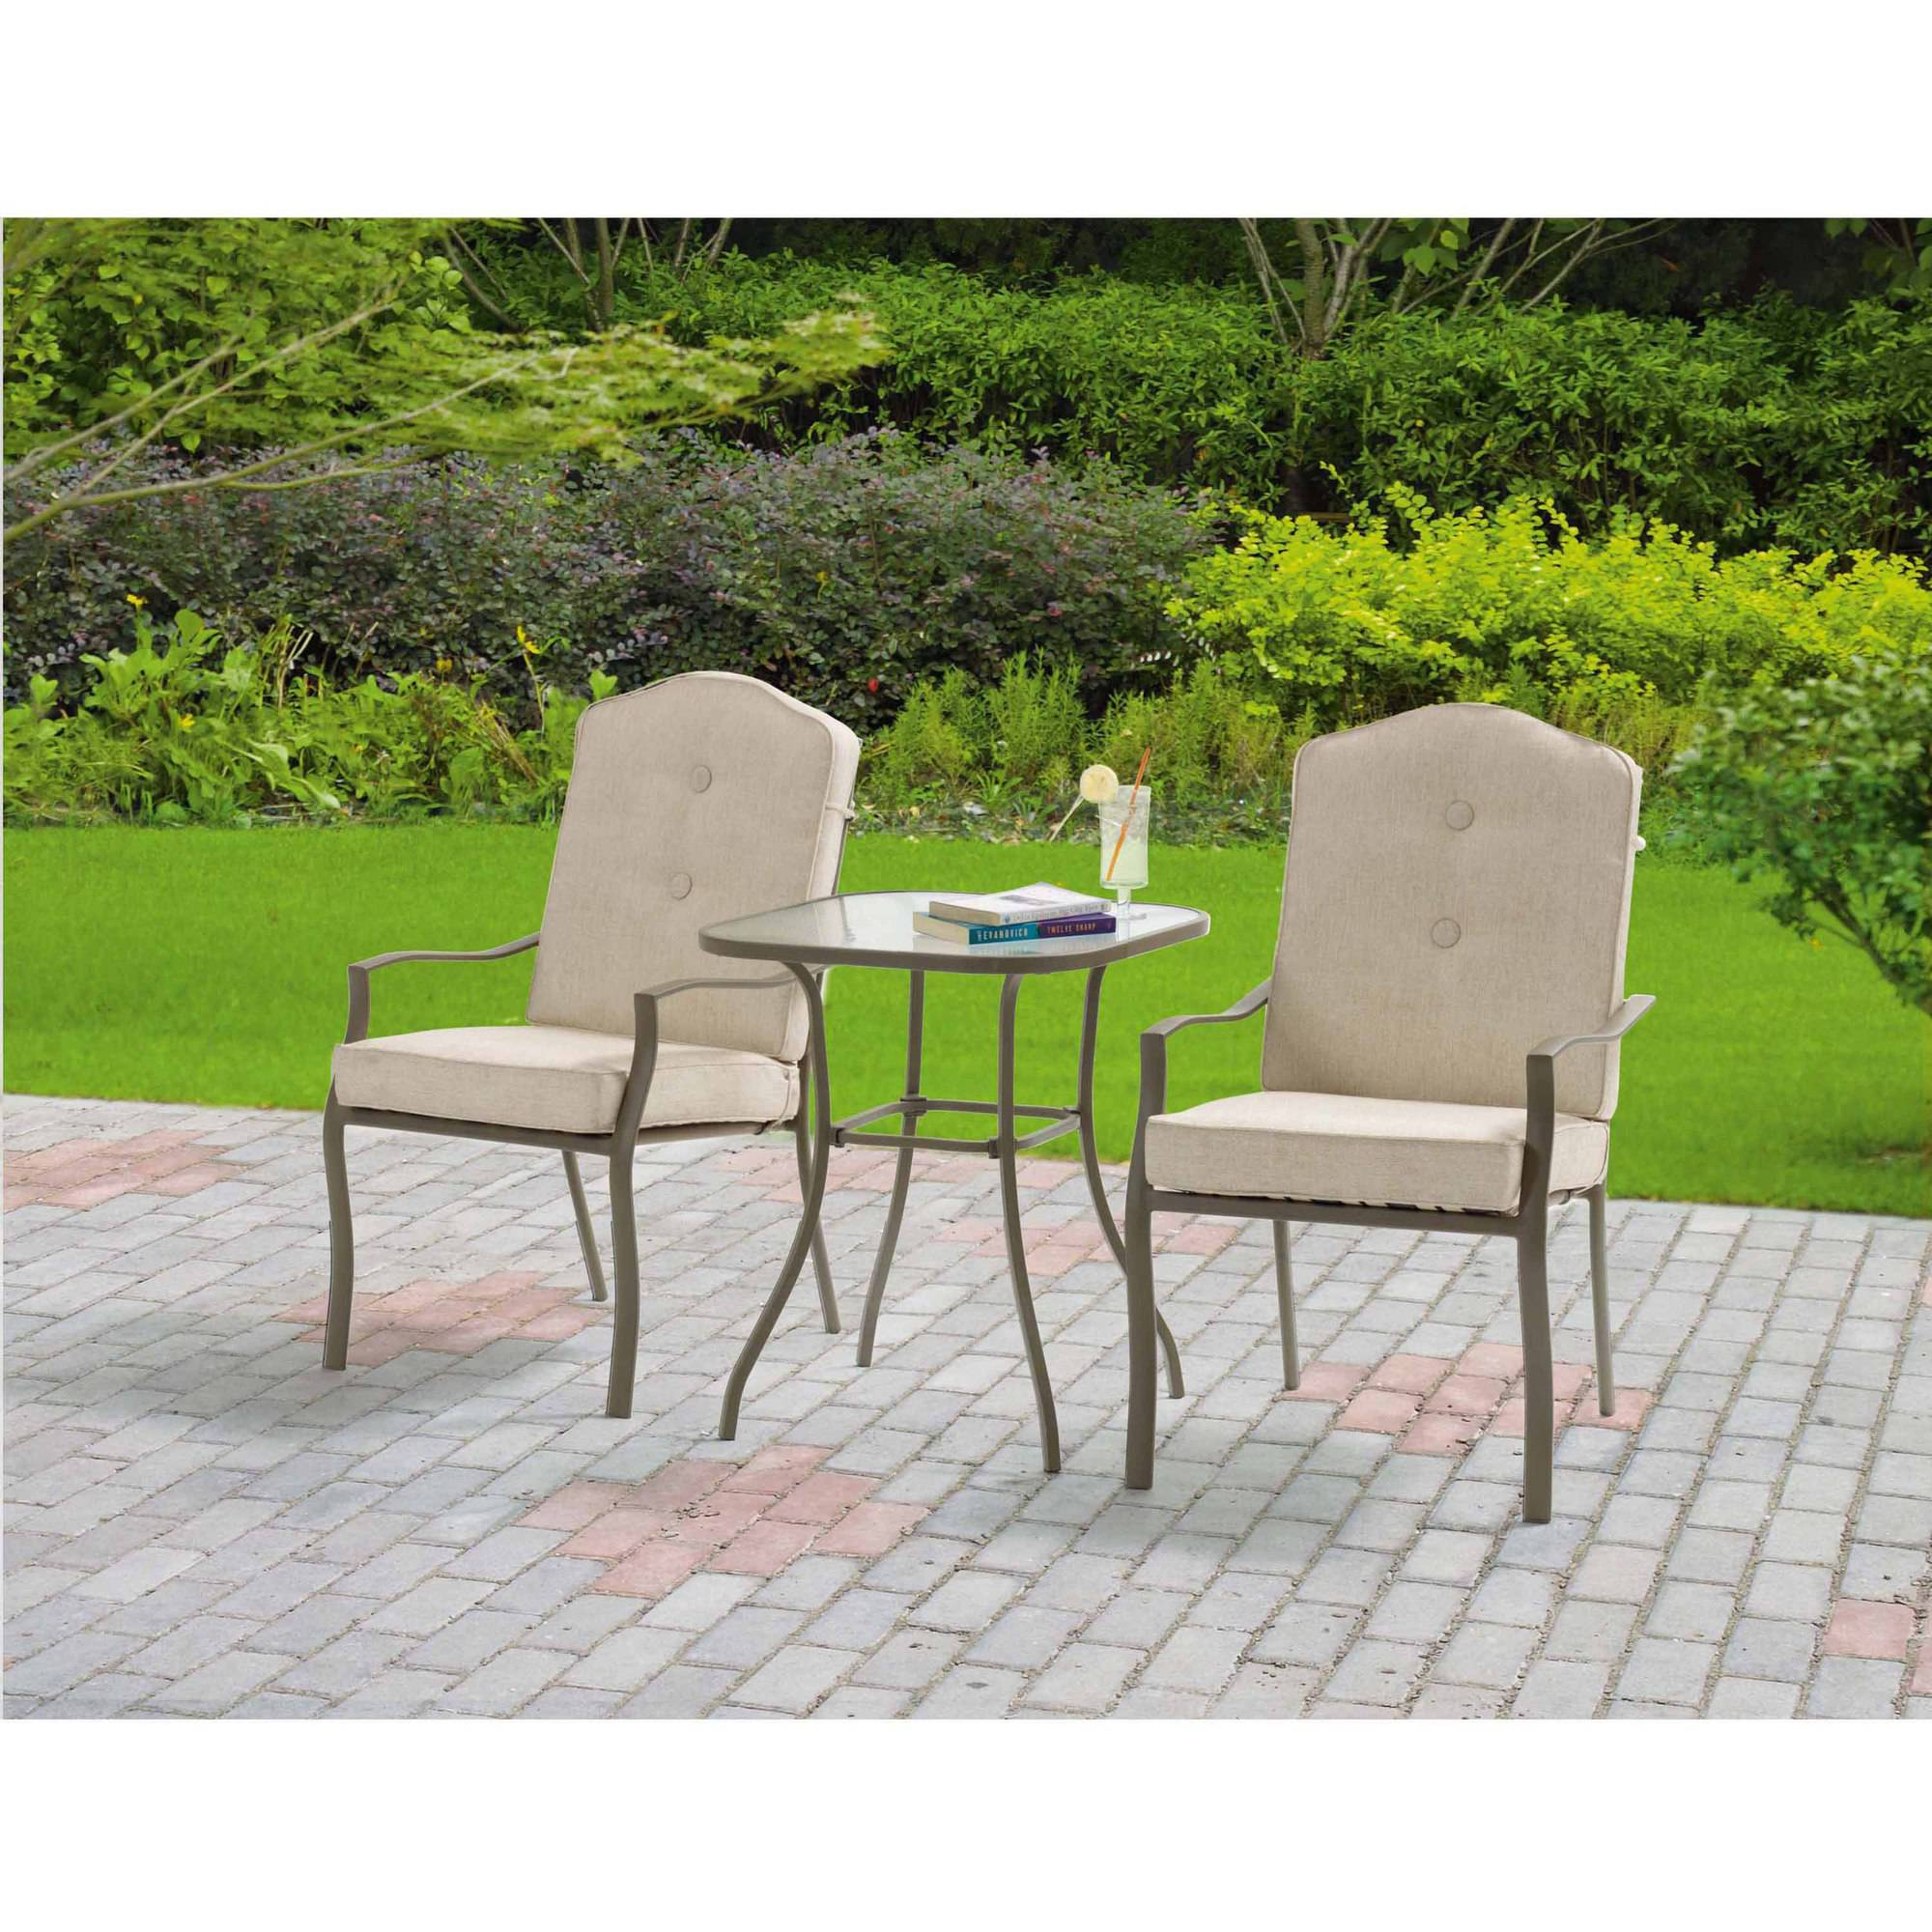 Costway Waterproof Bar Stool Cover Outdoor Patio Garden All Season